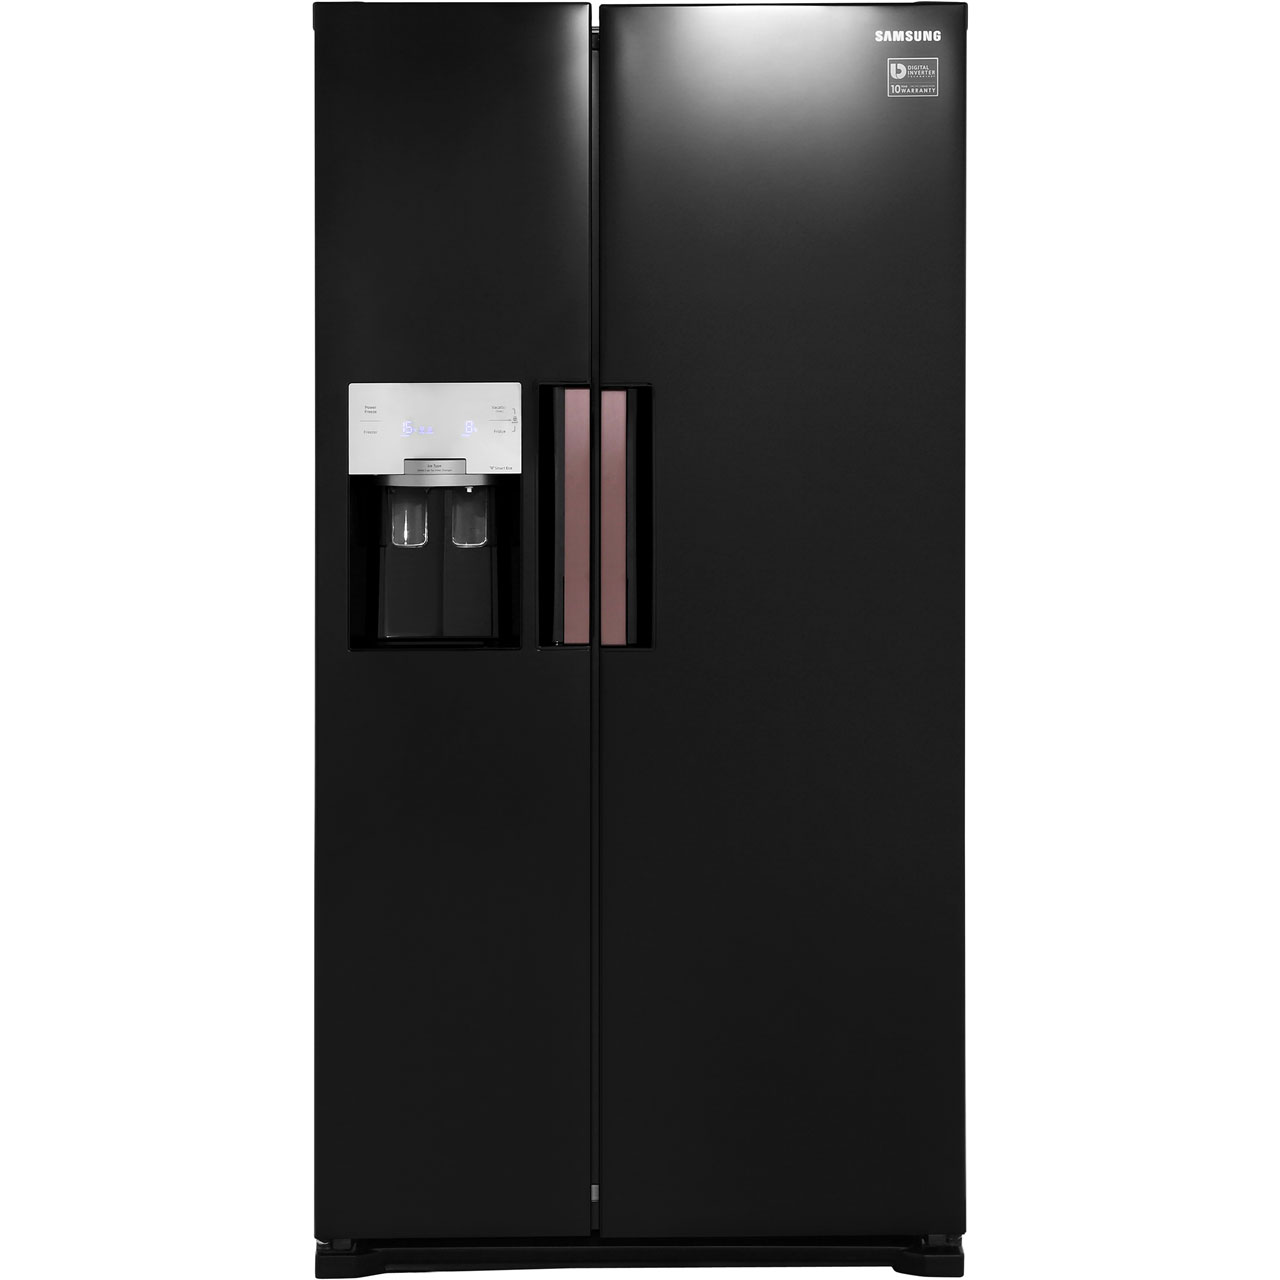 Samsung HSeries RS7667FHCBC Free Standing American Fridge Freezer in Black Gloss